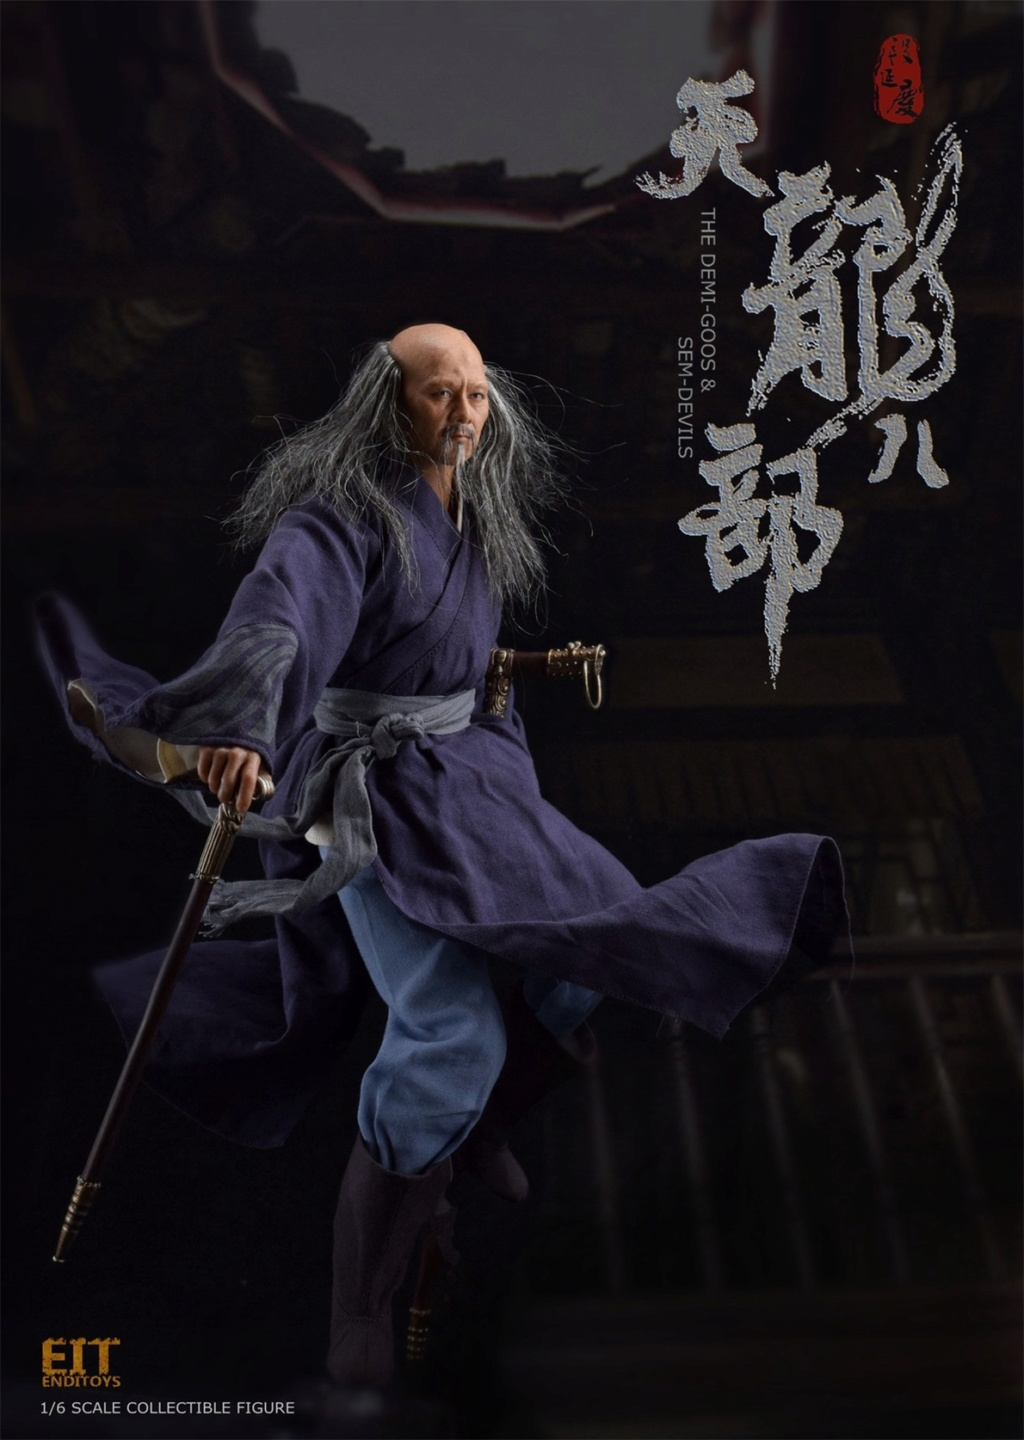 EndIToys - NEW PRODUCT: [EIT] End I Toys New: 1/6 Tianlong Babu - Duan Yanqing Movable (EIT1809) 1060